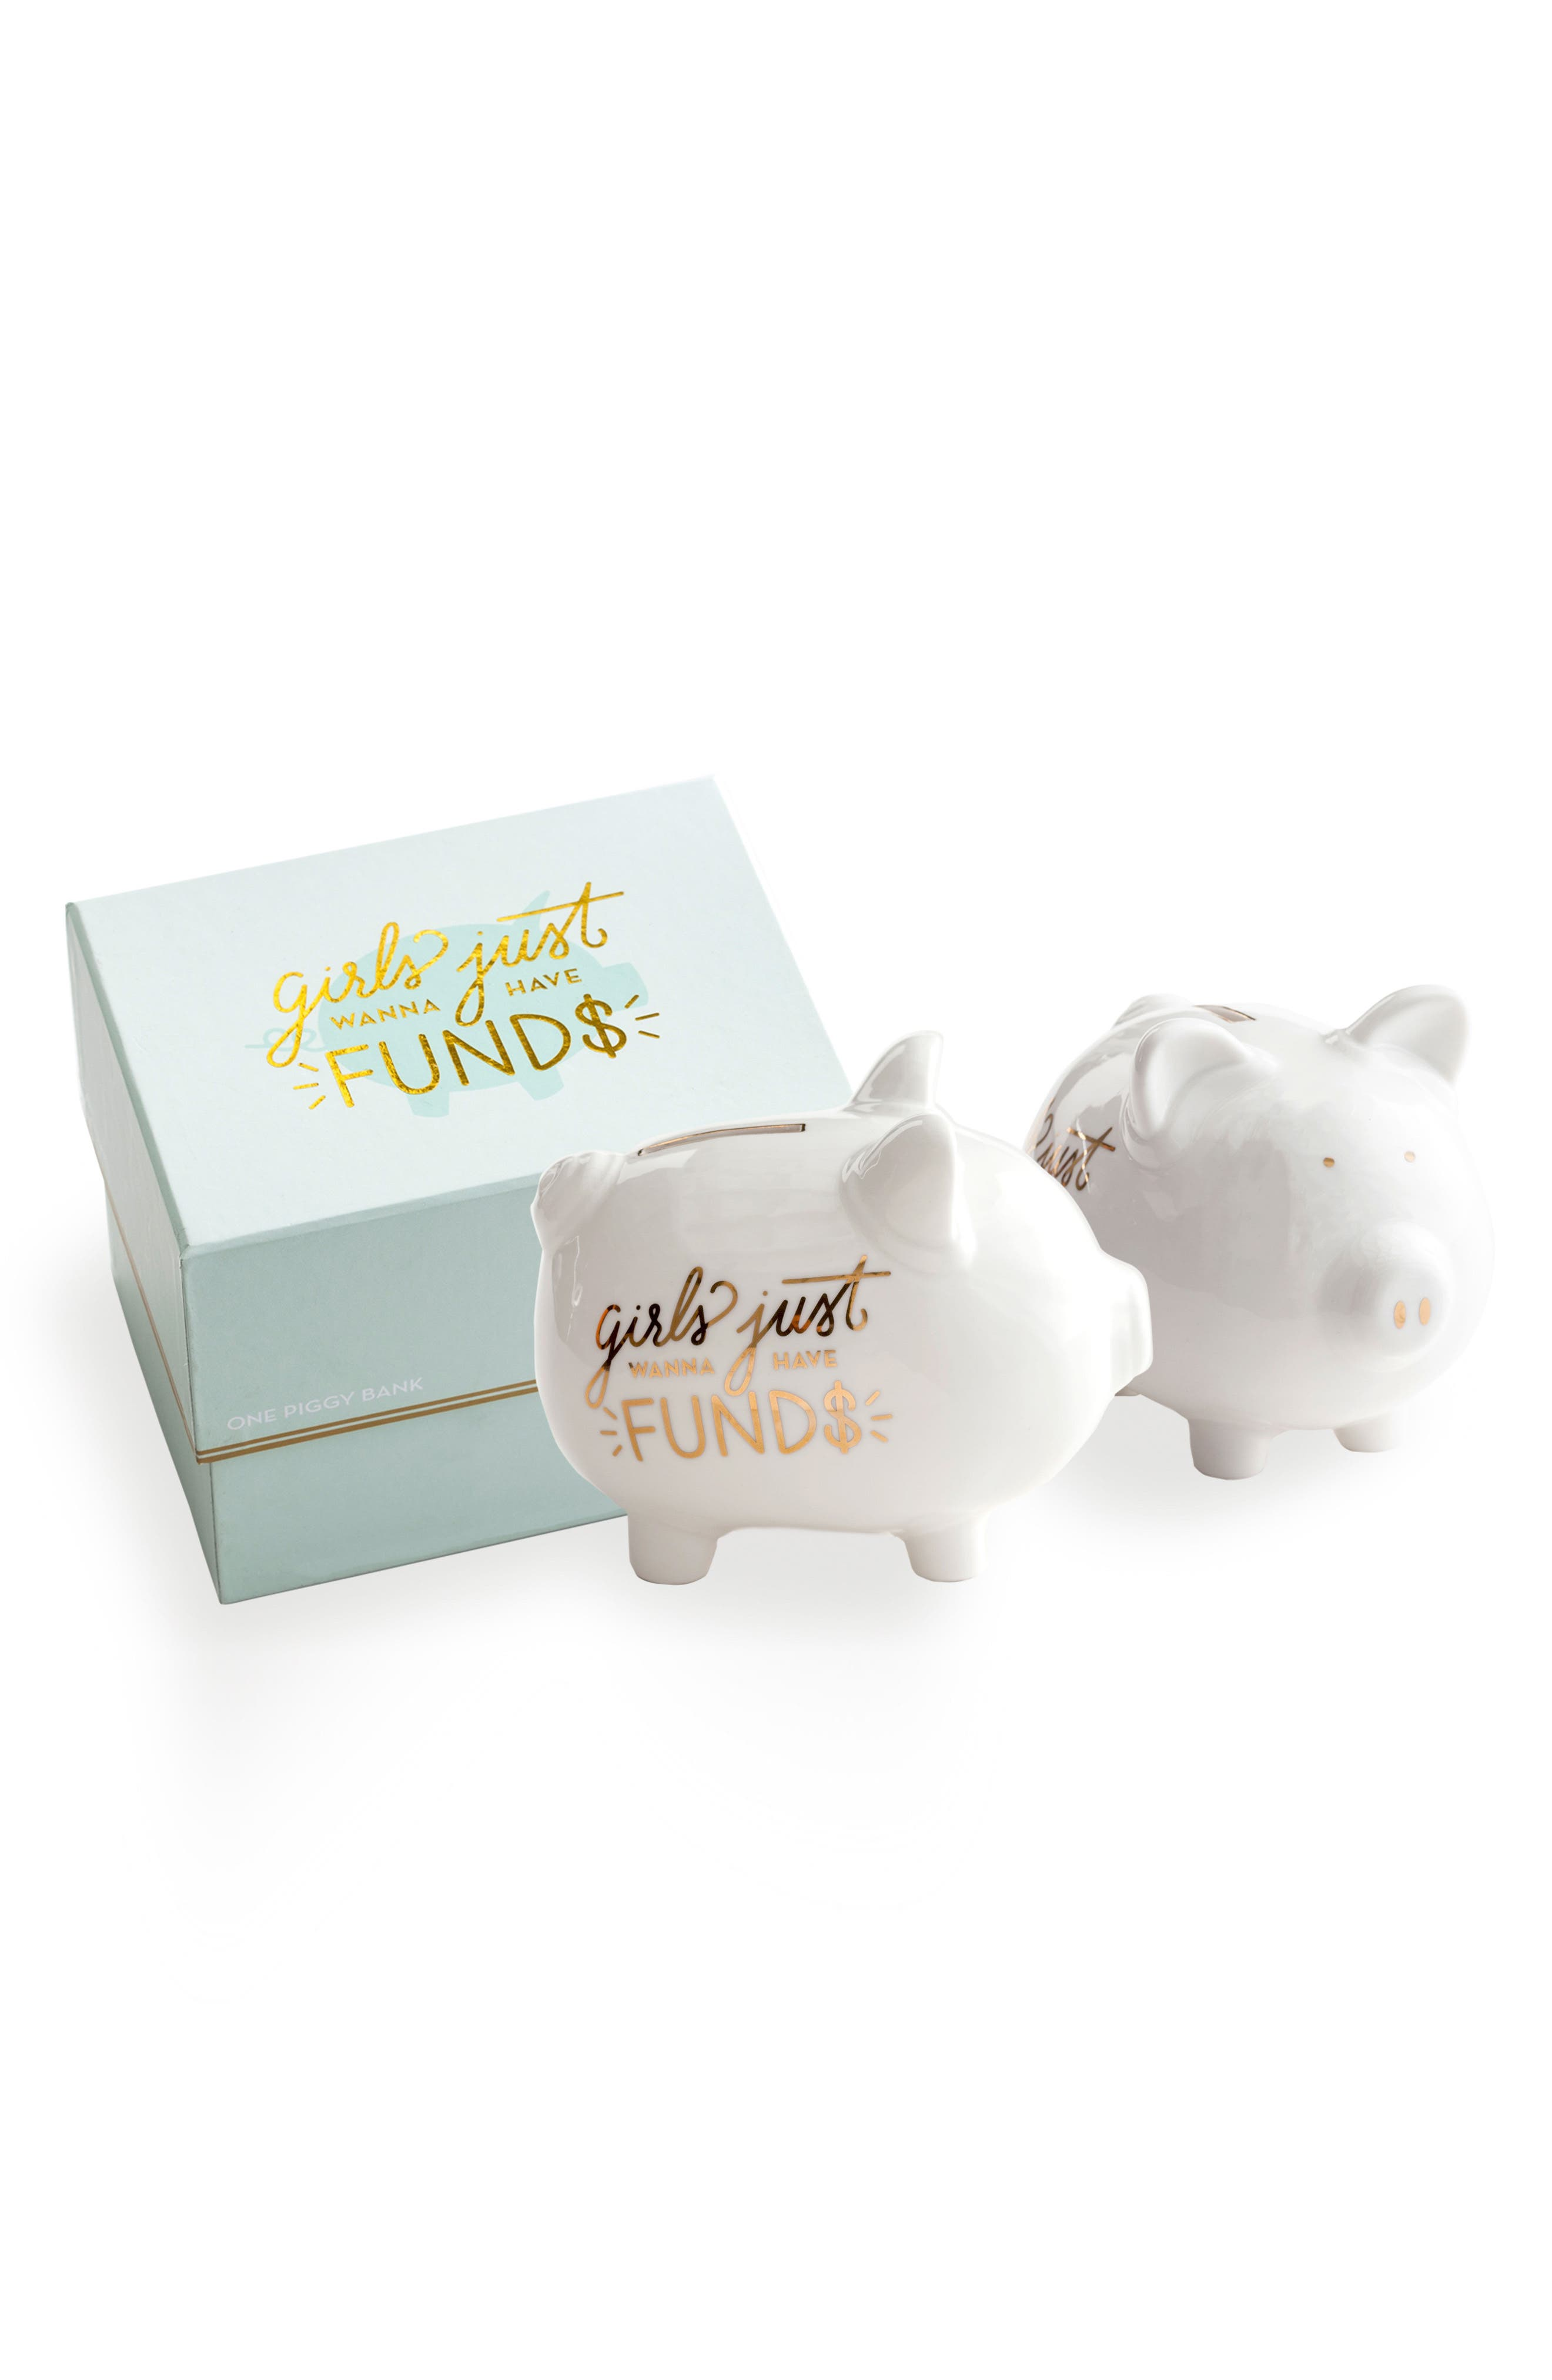 Girls Just Wanna Have Funds Porcelain Piggy Bank,                         Main,                         color, White